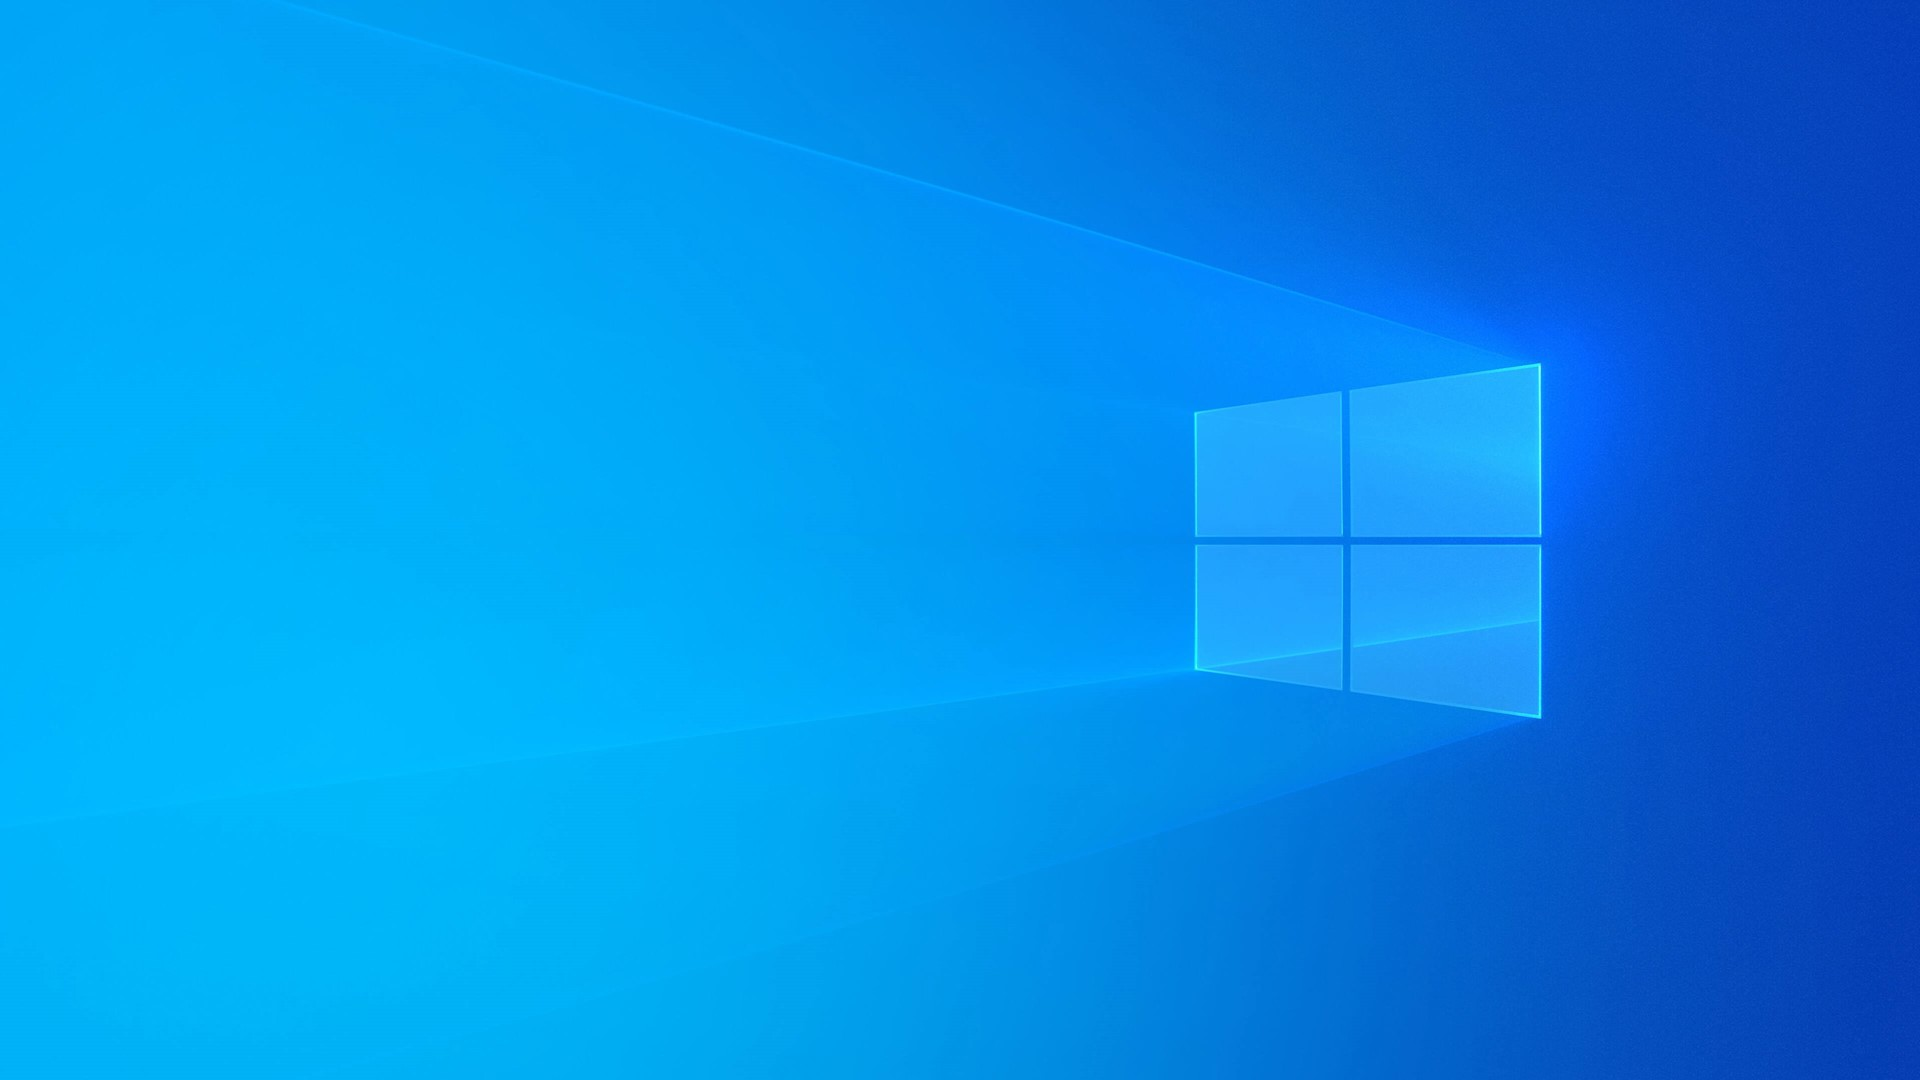 New Default Windows 10 Light Theme Wallpaper Now Available At Wallpaperhub At 4k Resolution